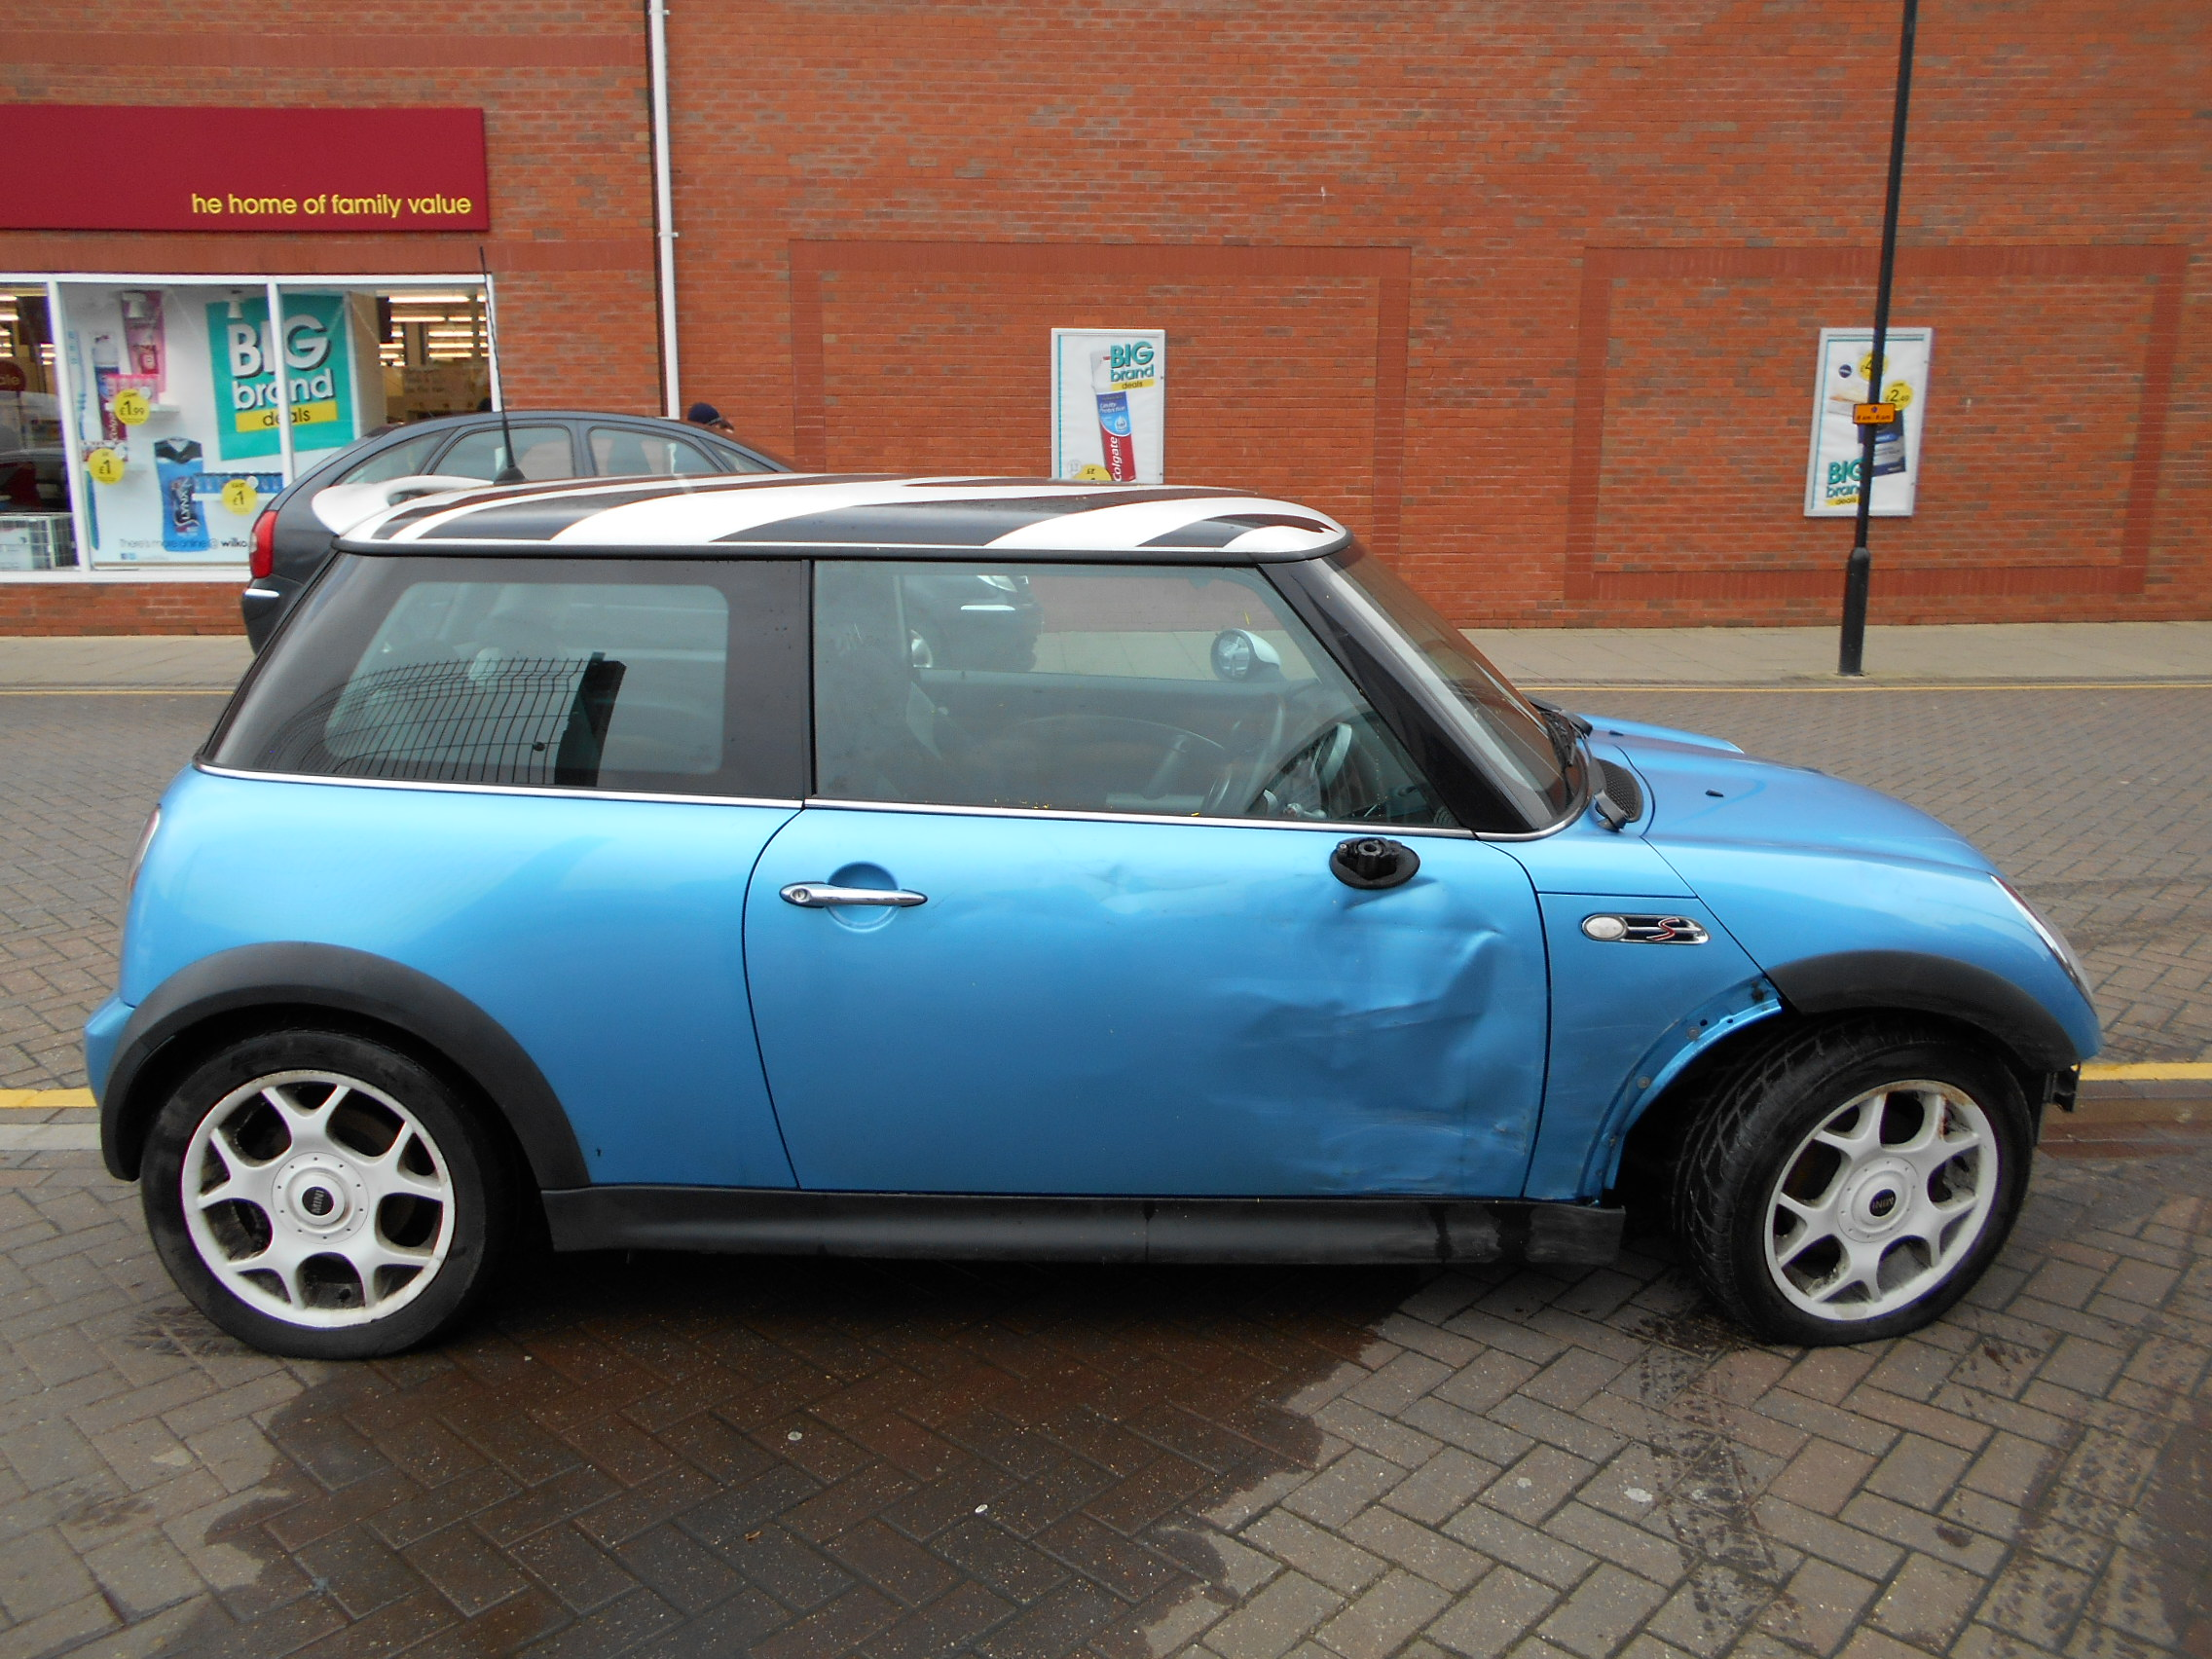 02 Blue 1.6 BMW Mini Cooper S - 1